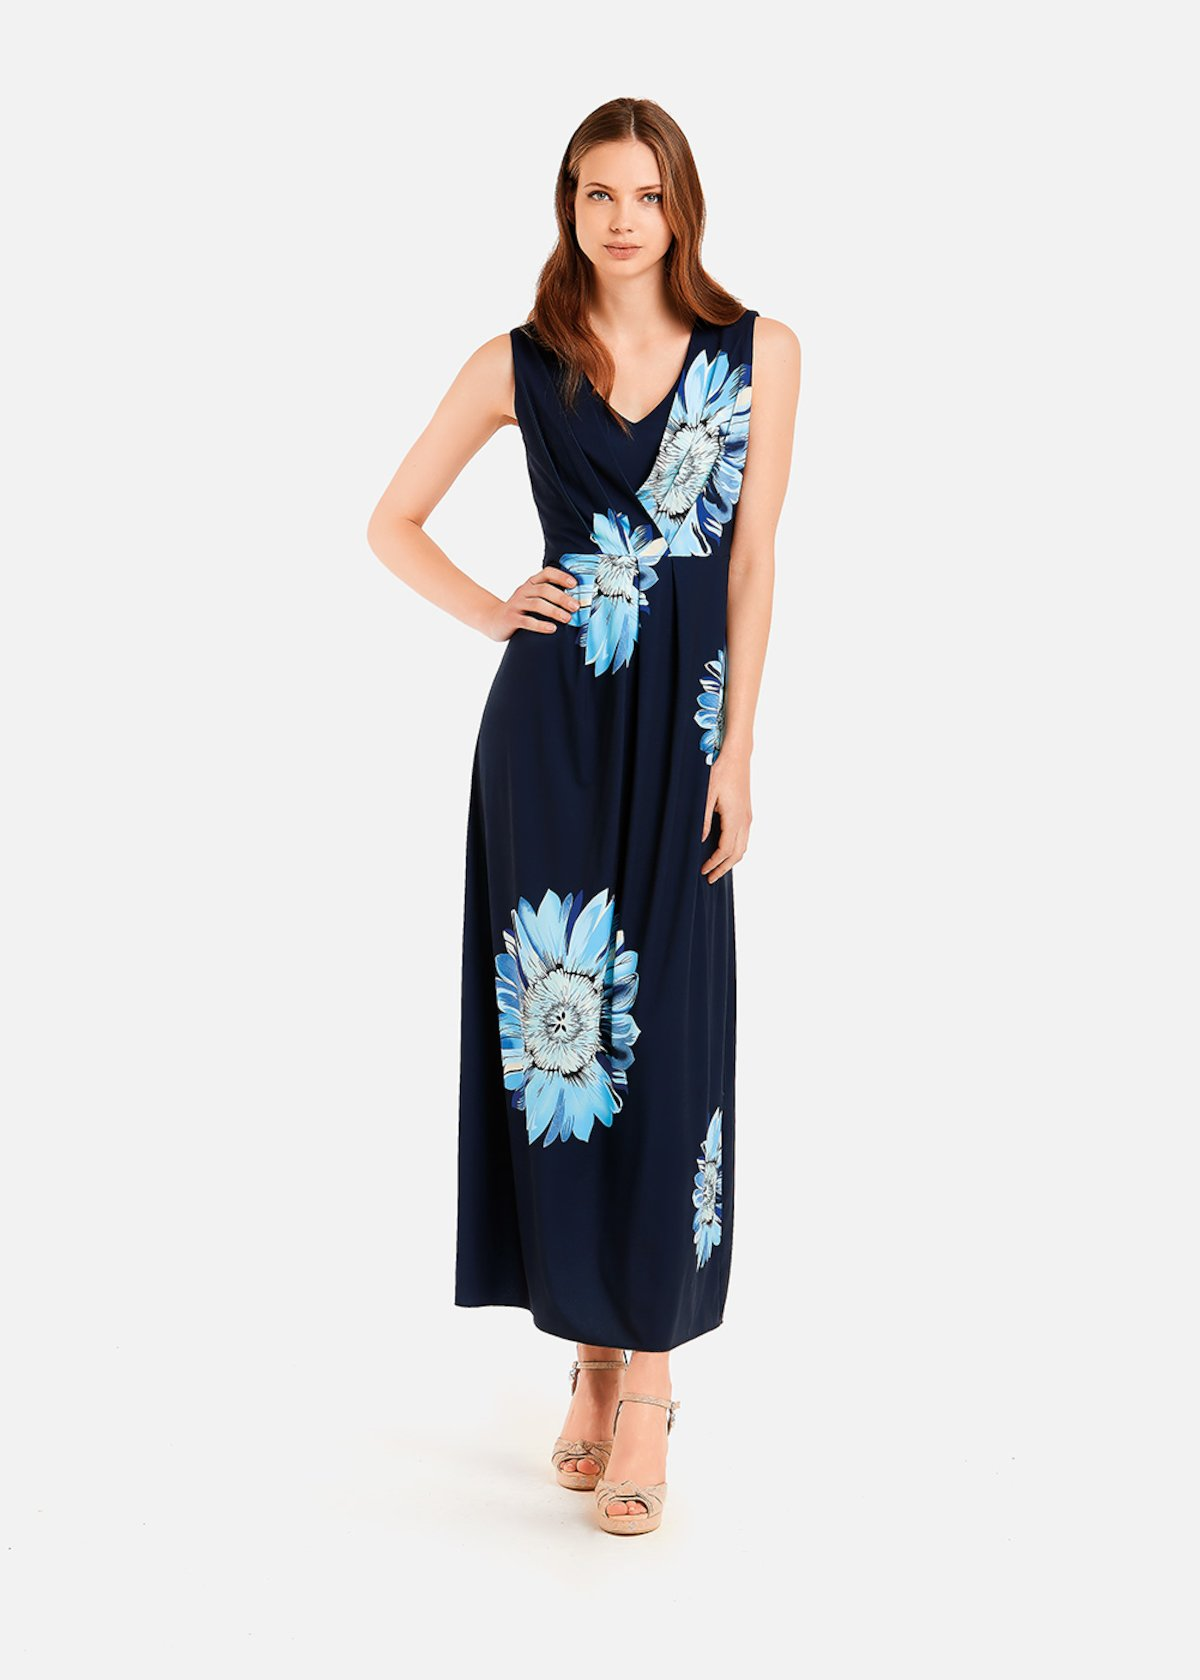 Aris long dress printed with sunflowers - Medium Blue / Aquarius Fantasia